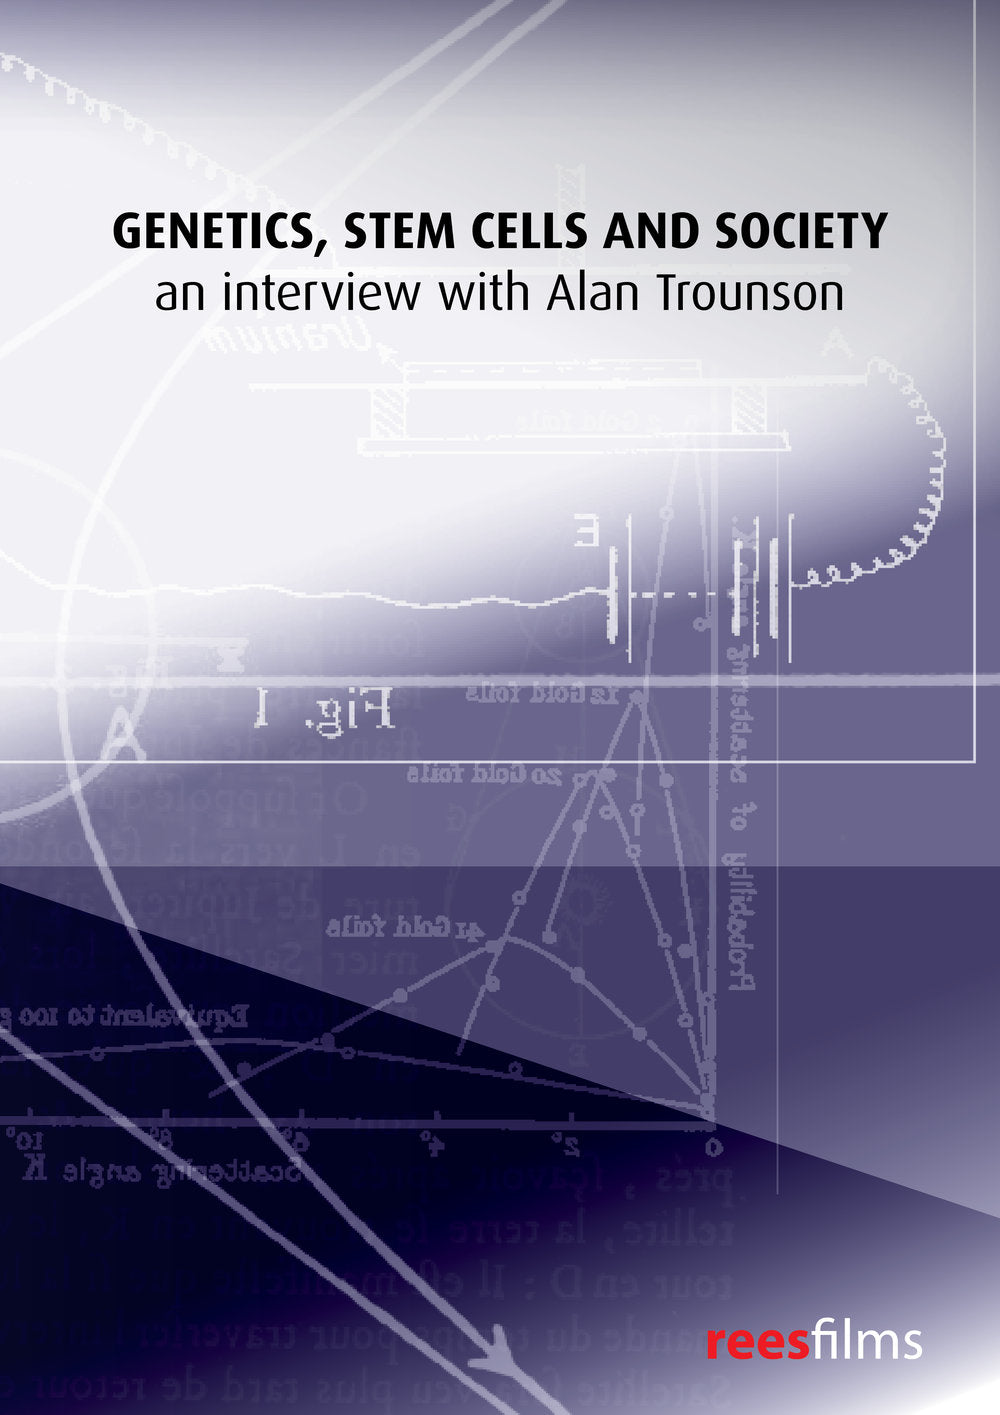 Genetics, Stem cells and Society: an interview with Alan Trounson